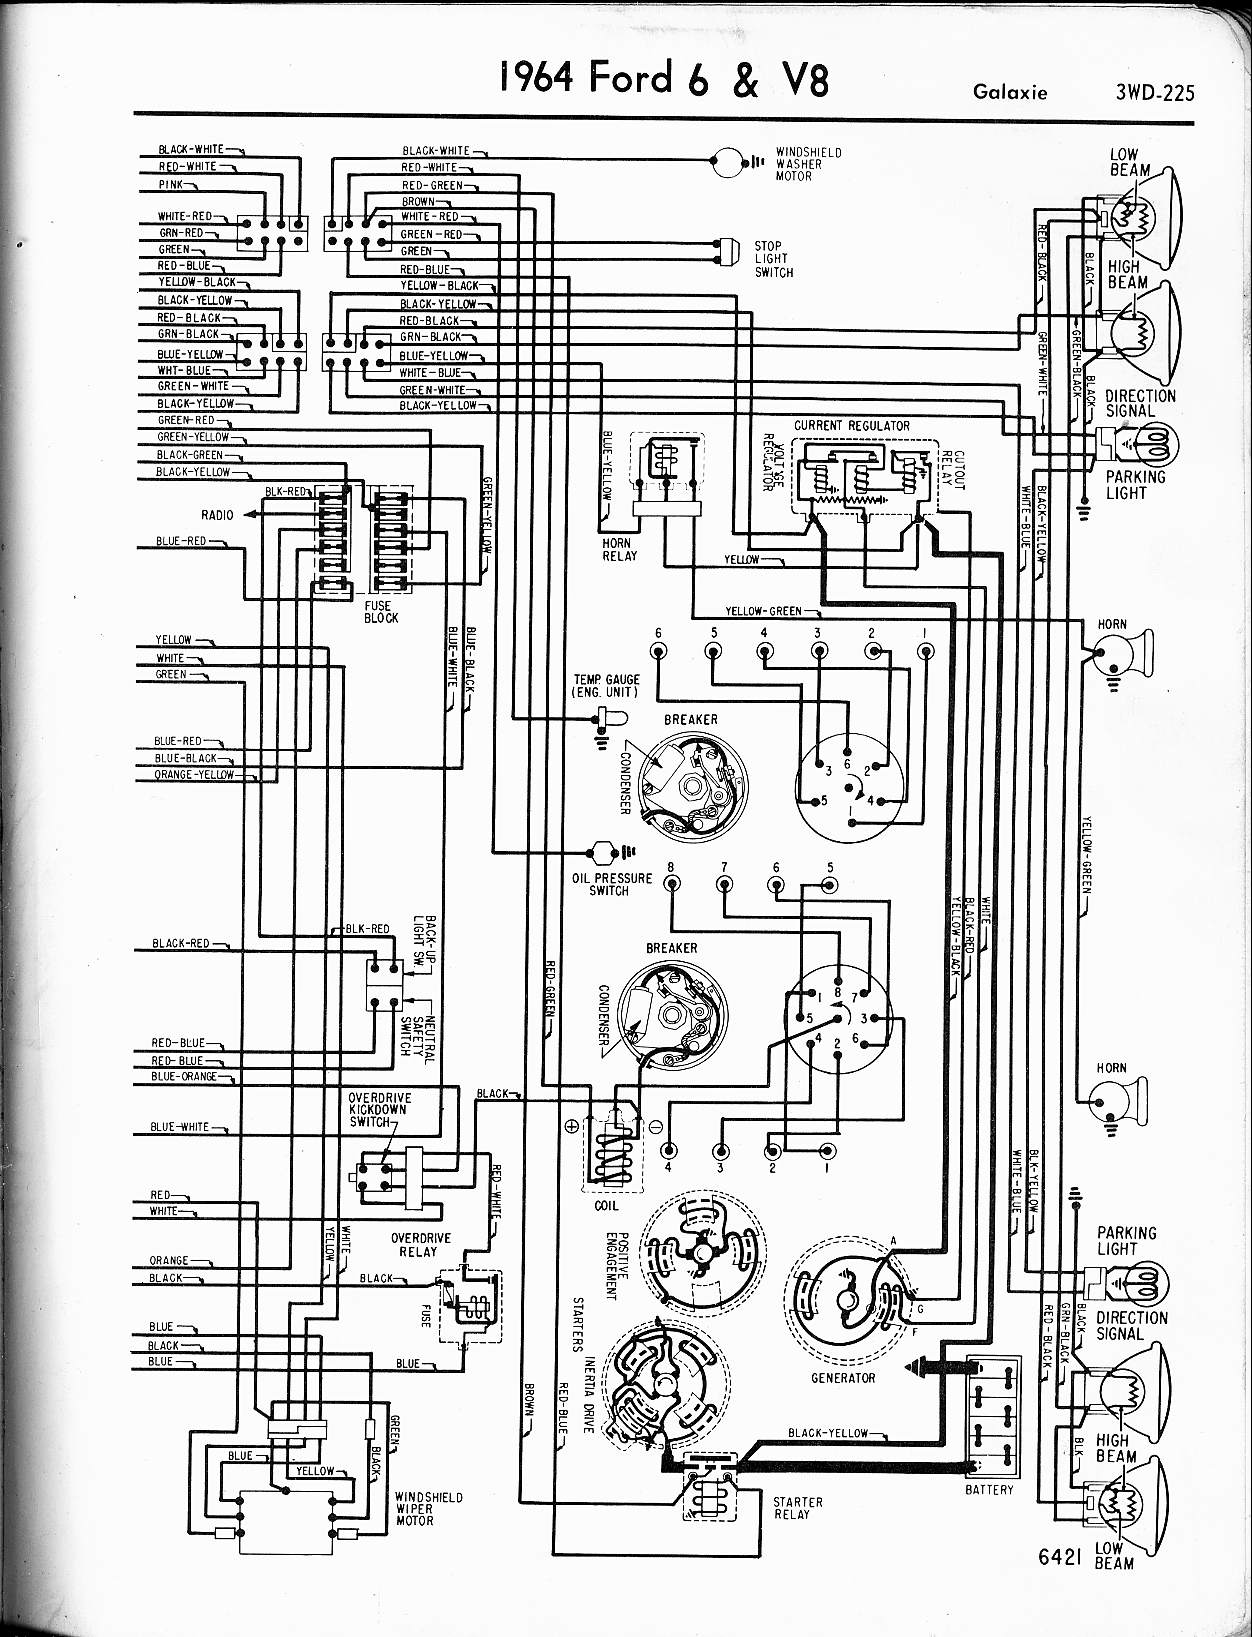 MWire5765 225 57 65 ford wiring diagrams Ford E 350 Wiring Diagrams at panicattacktreatment.co